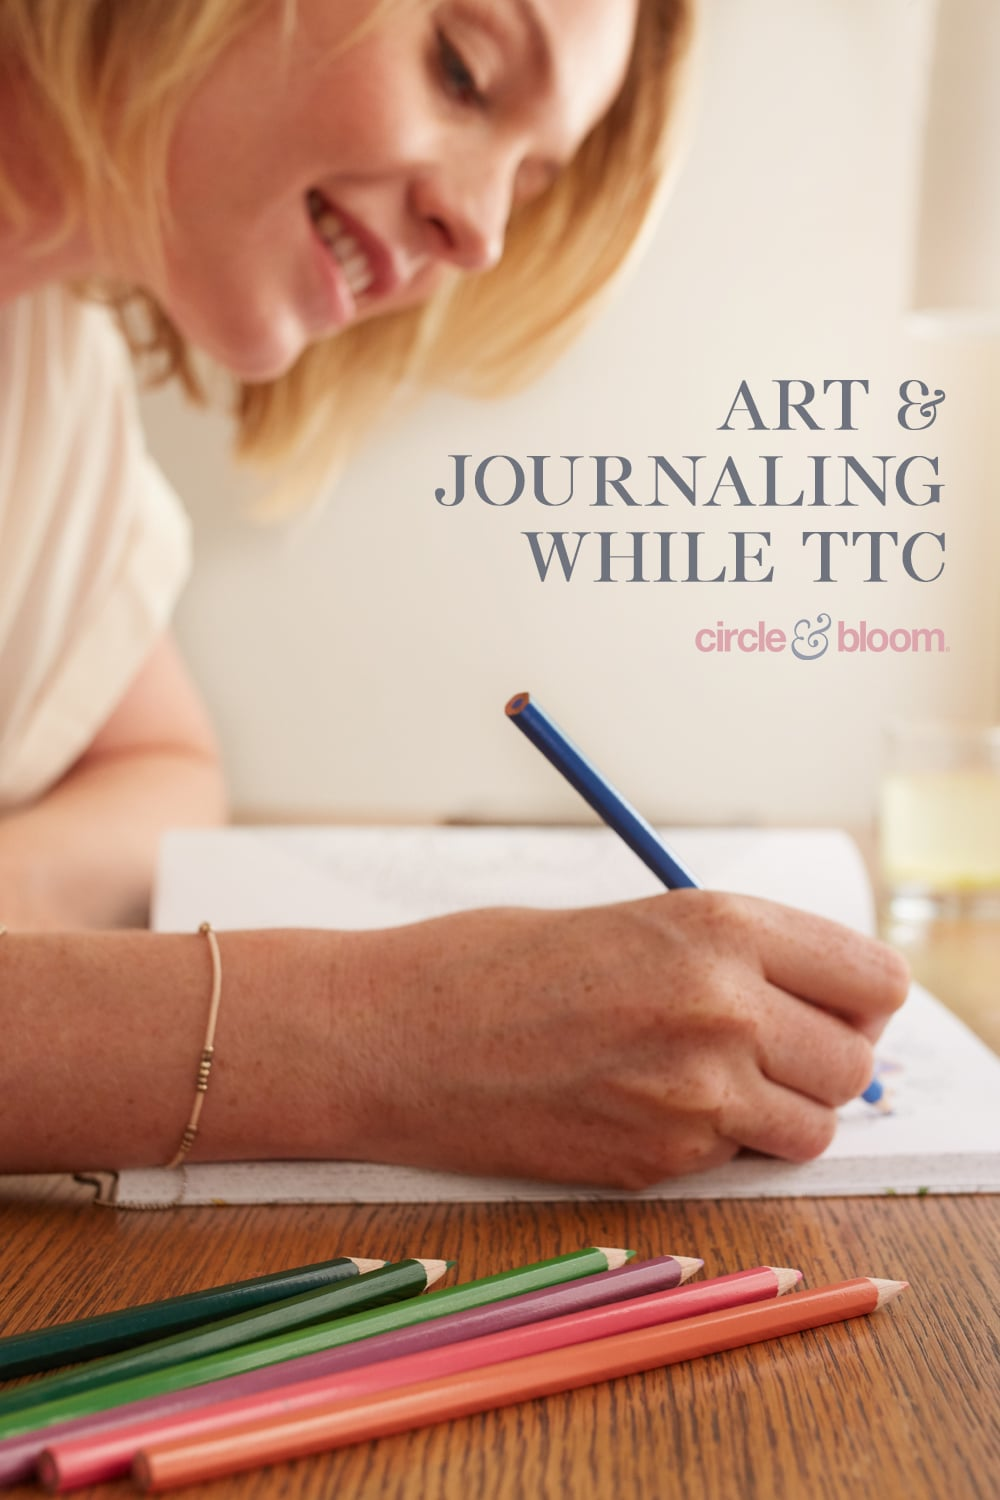 Journaling & Art Therapy: 2 Incredible Stress & Relief Tools When TTC